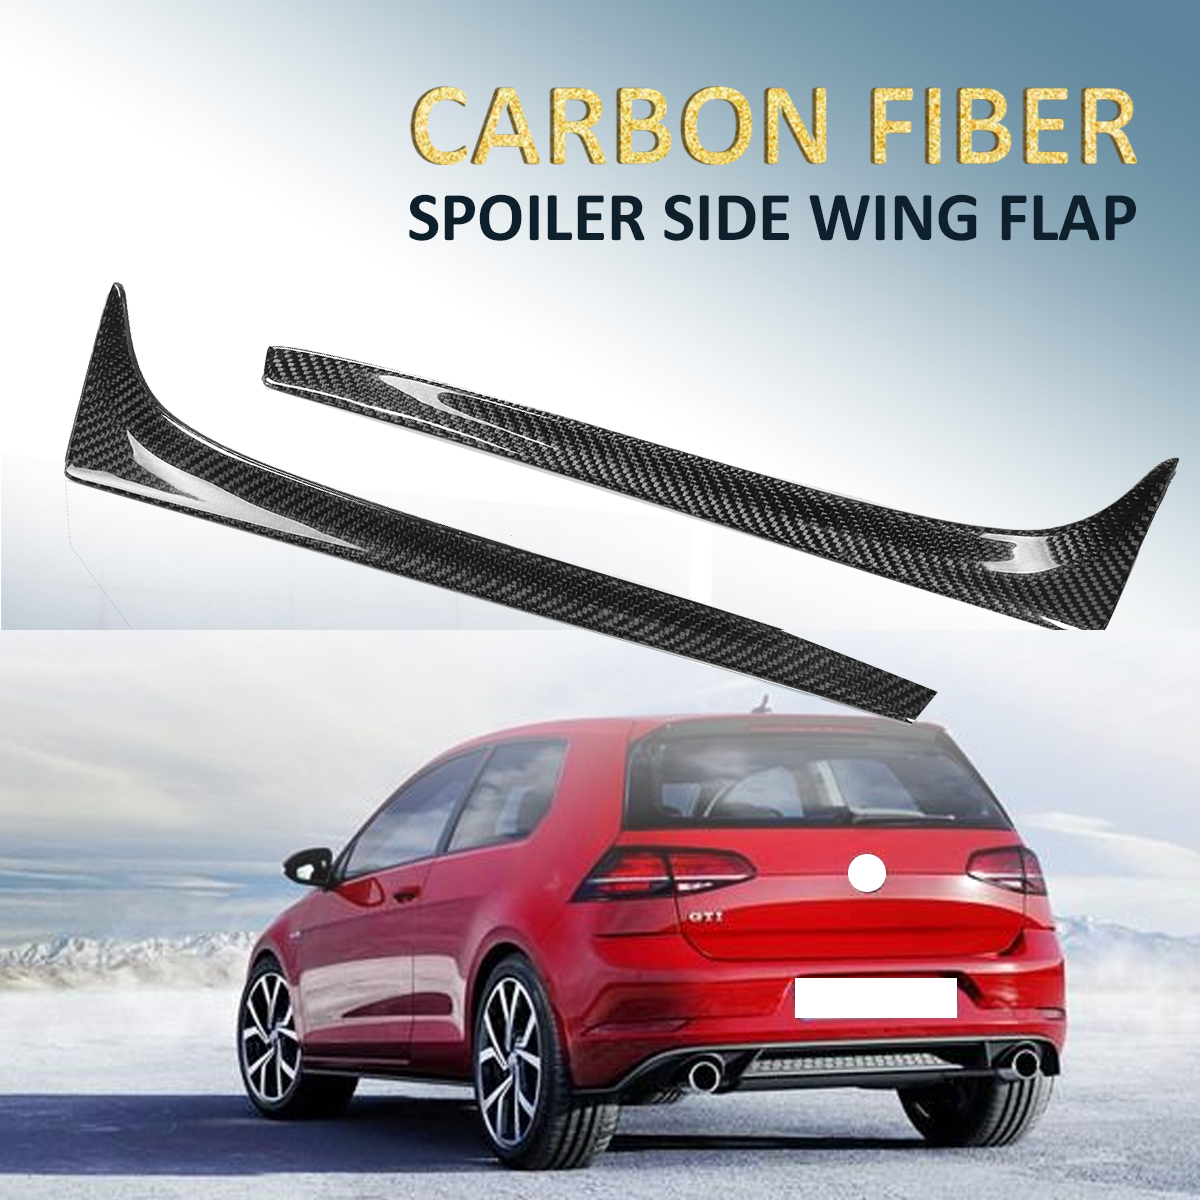 High Quality 2x Real Carbon Fiber Rear Spoiler Side Wing For Volkswagen GOLF Mk7 7 VII TSI TDI 2014-2017 Rear Side Wing Spoiler 2x rear